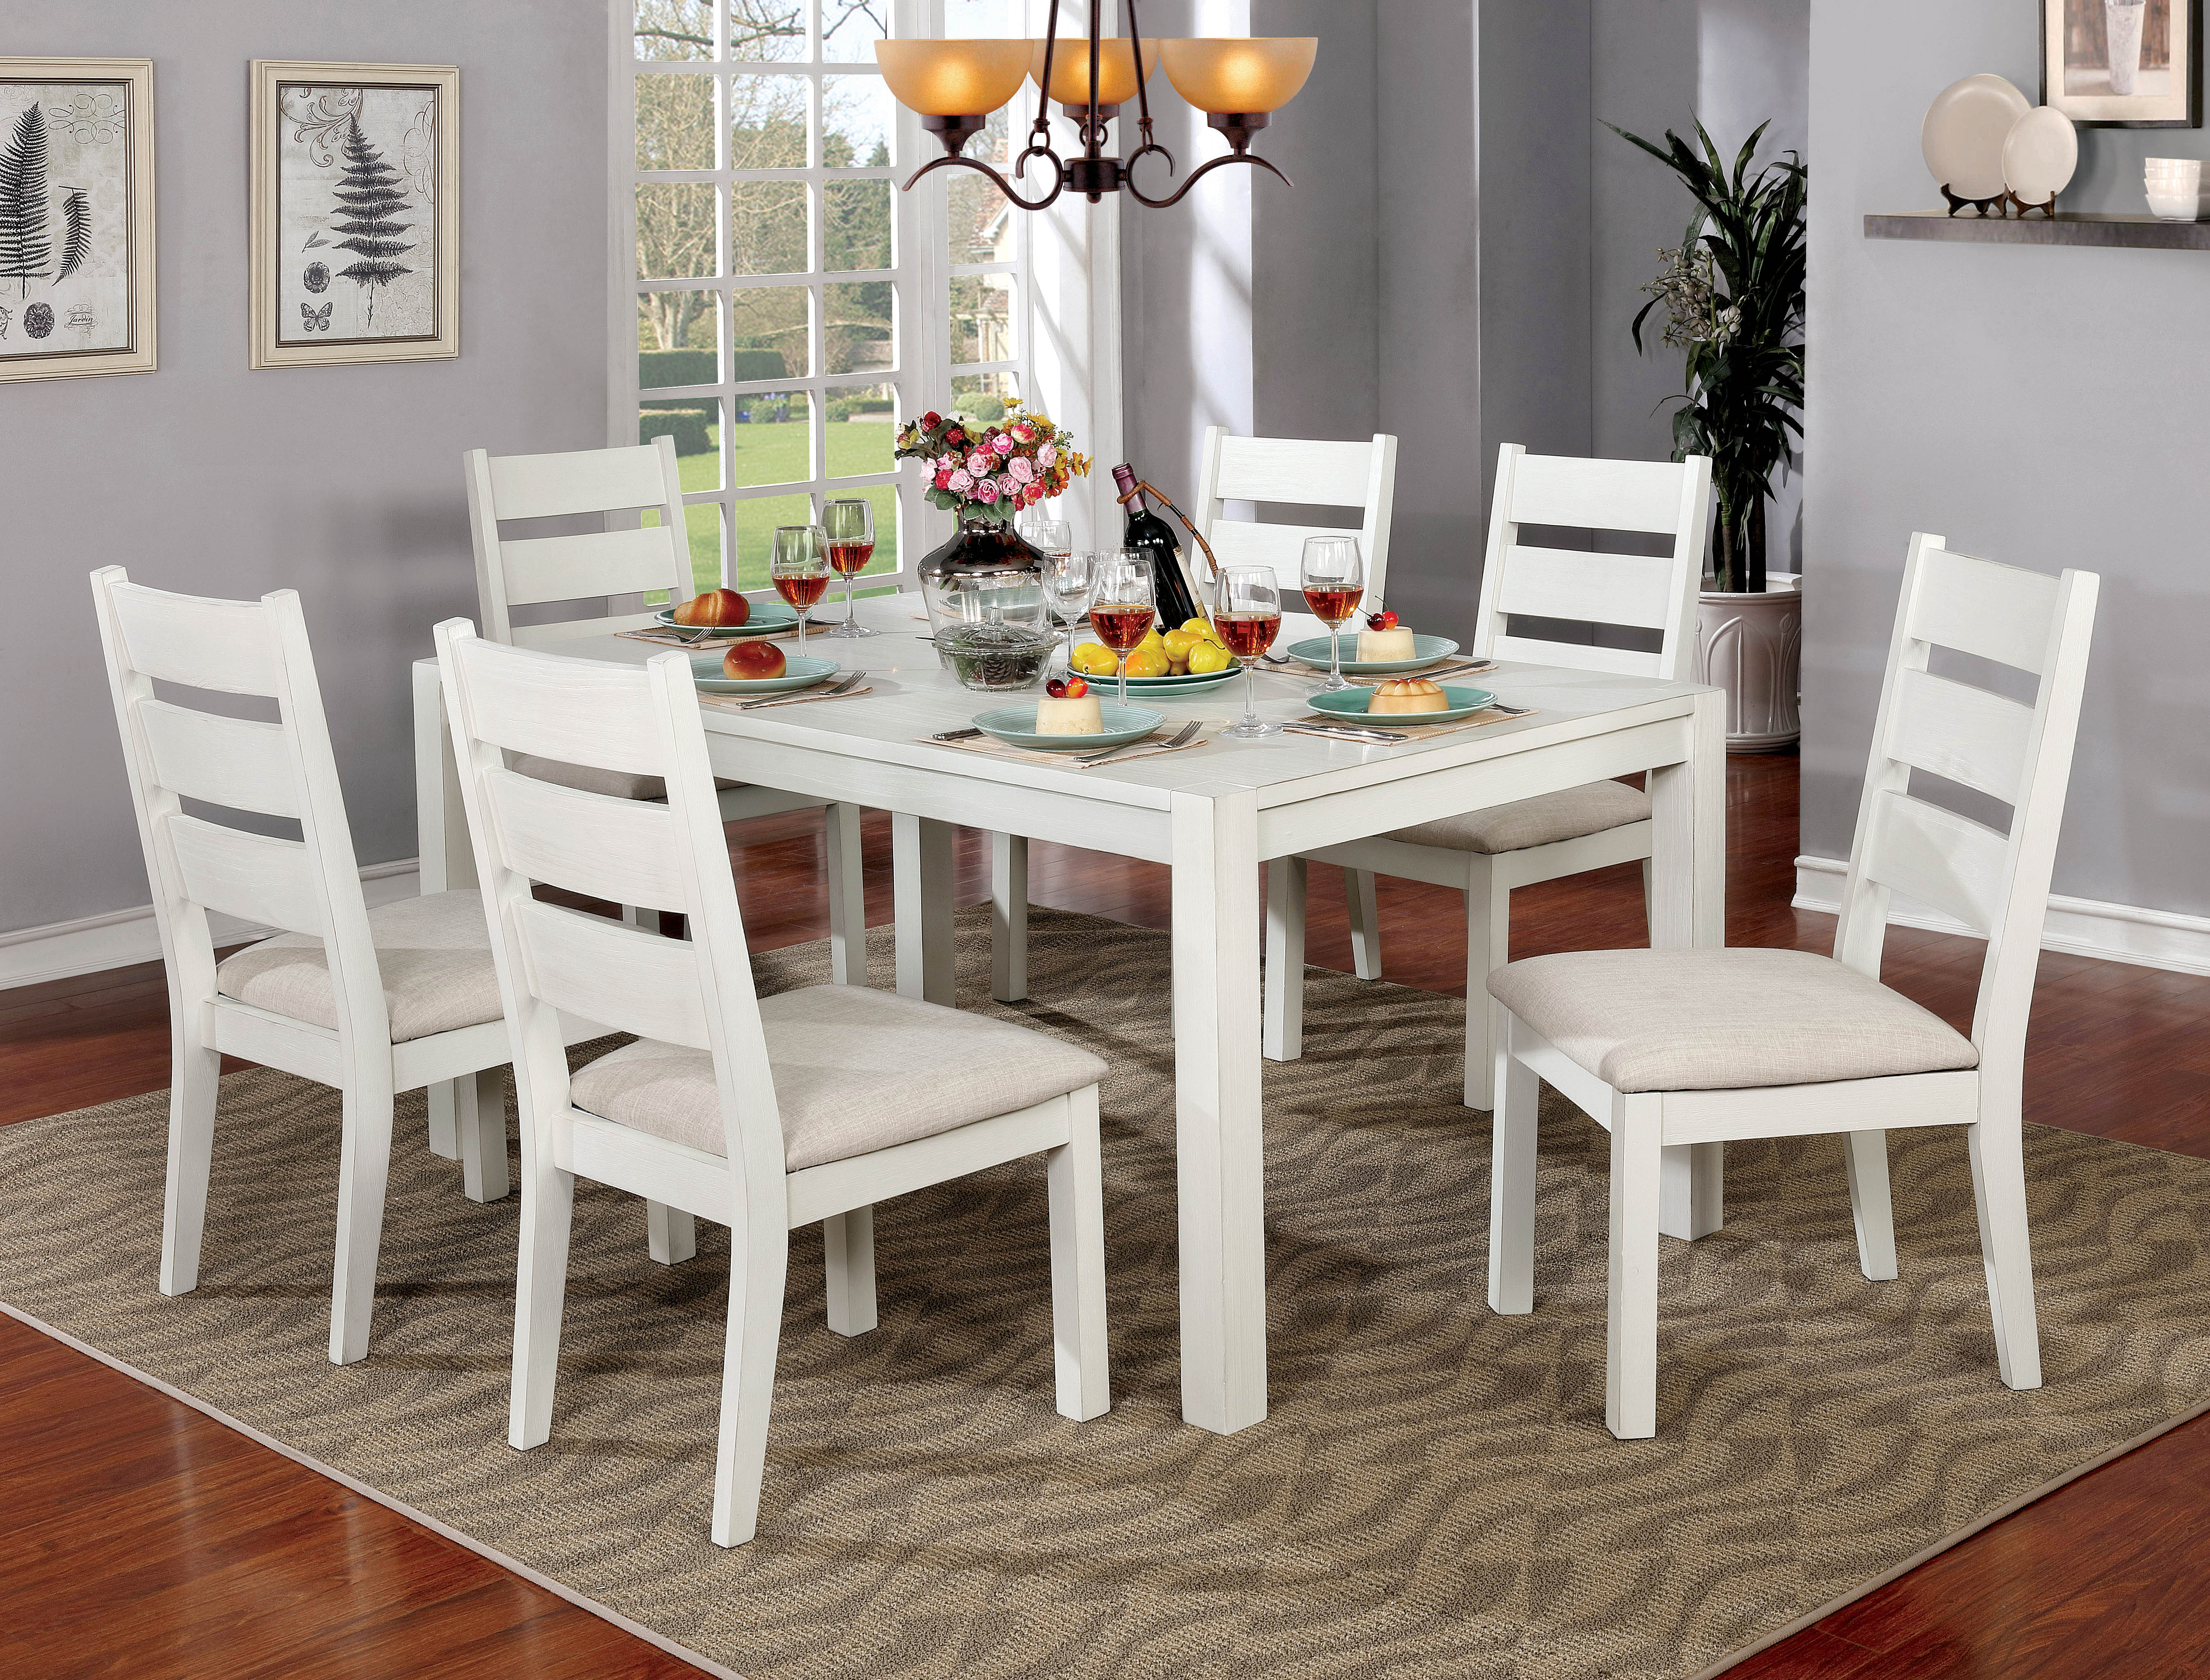 Furniture of America Galveston Rustic Weathered White Dining Table by Furniture of America